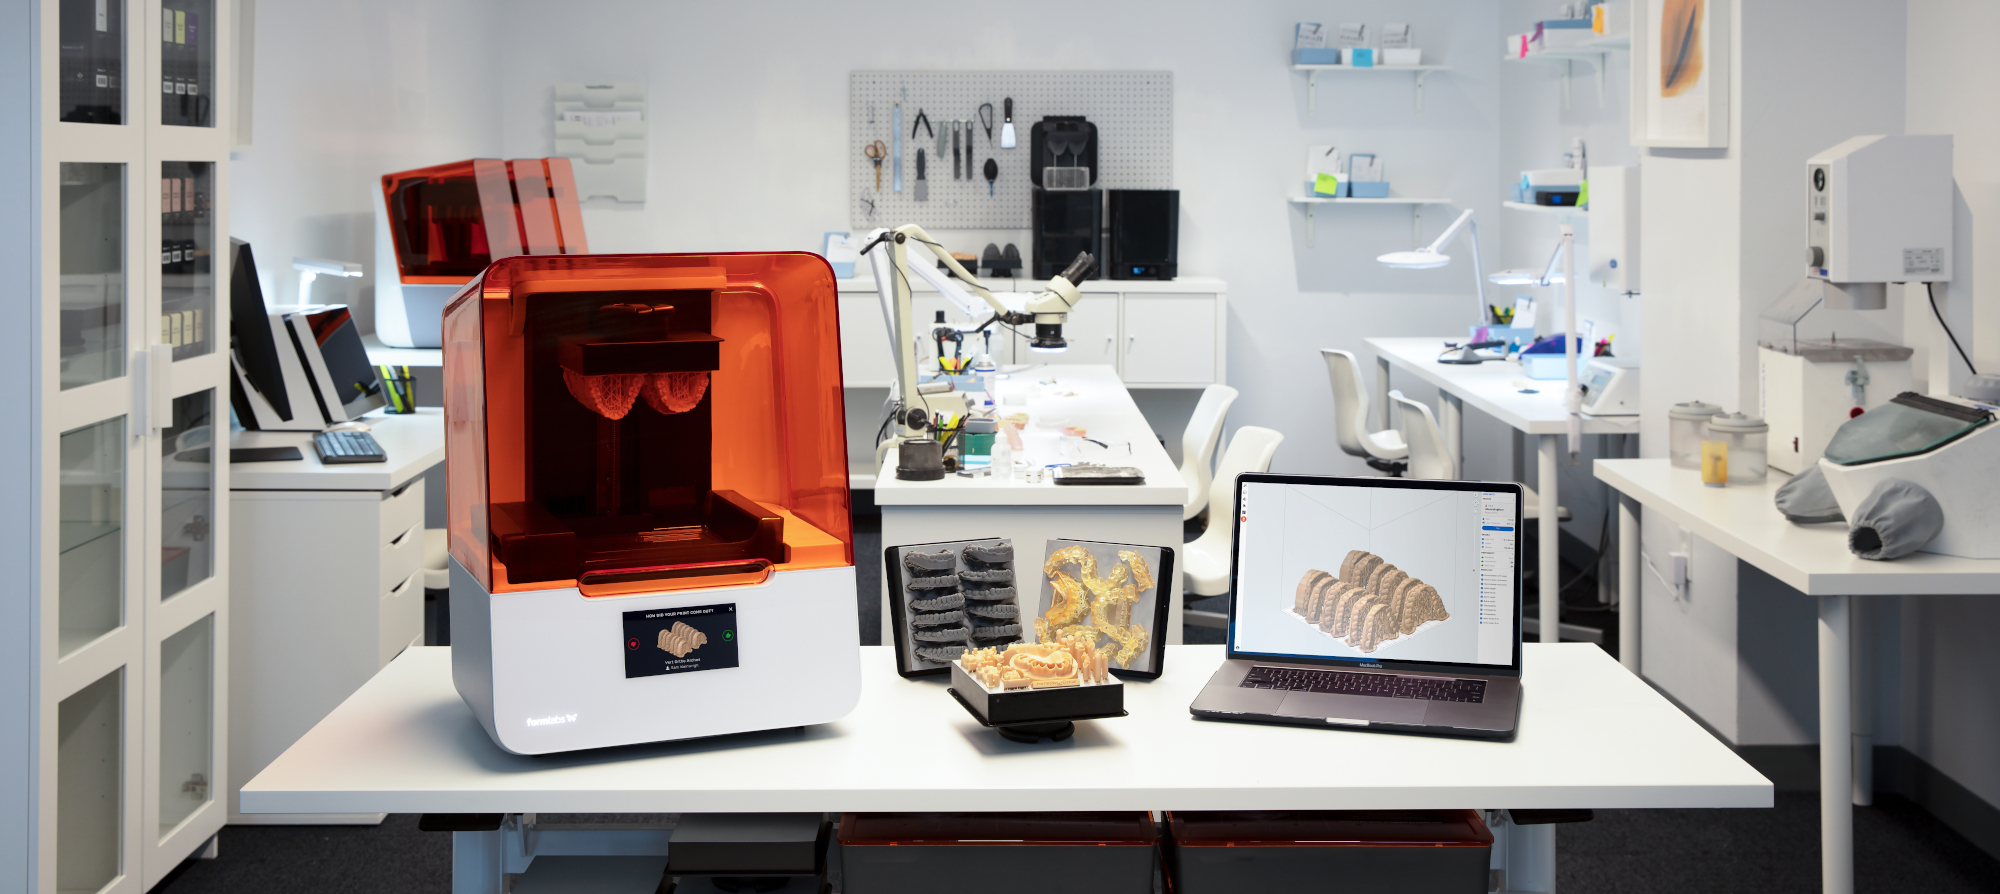 Live Printing with Formlabs Dental: Learn about Formlabs Easiest to Use 3D Printers